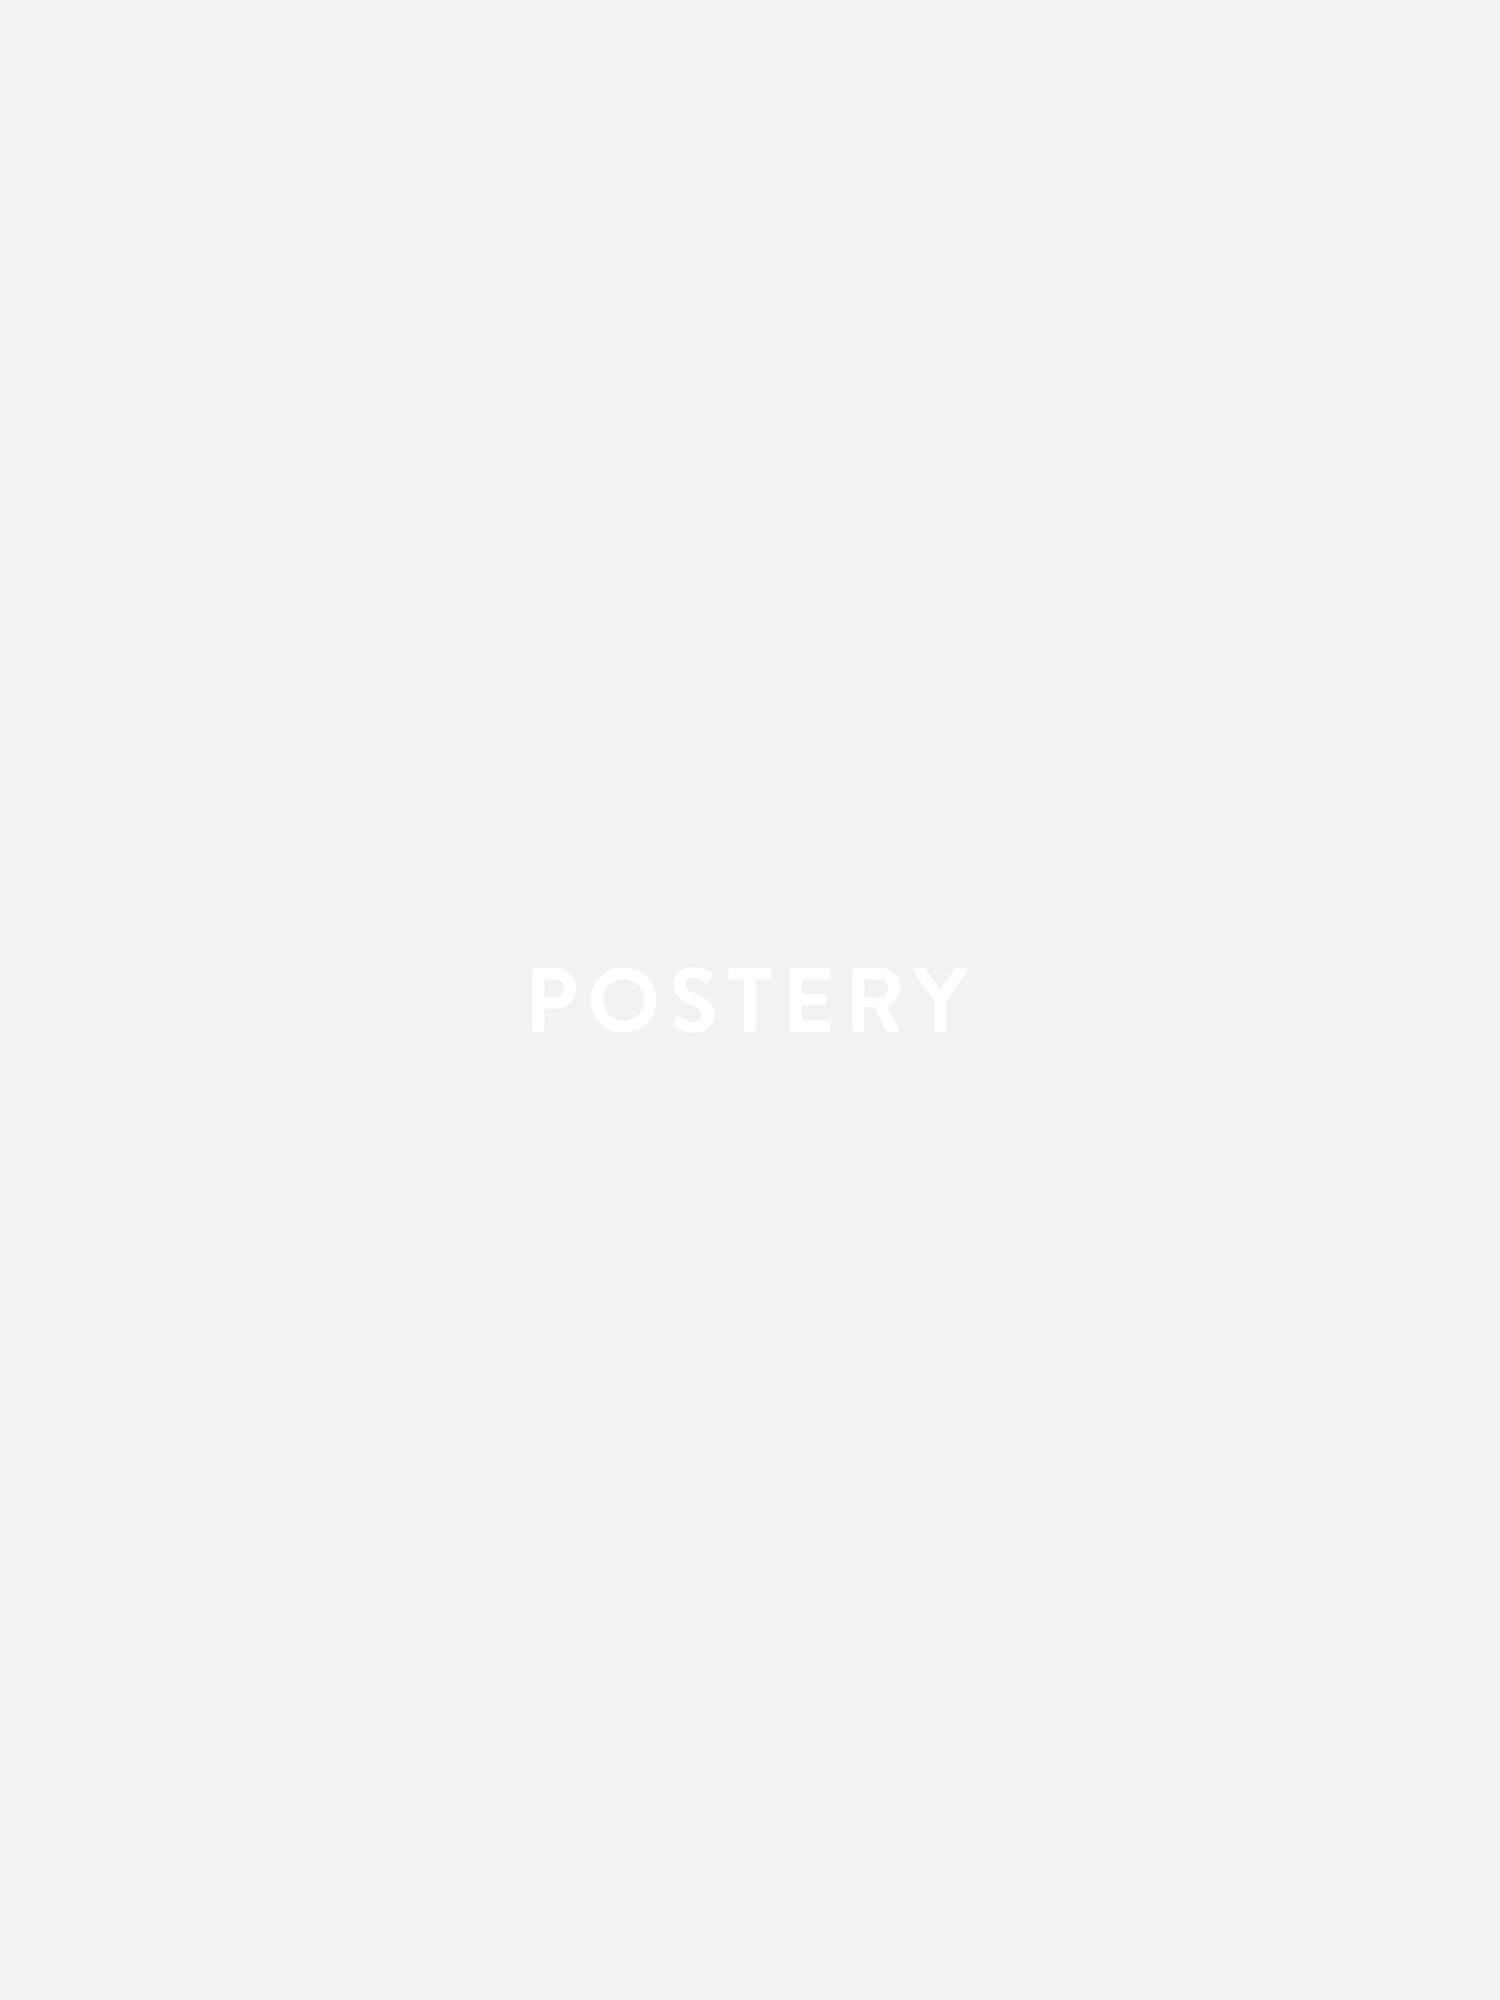 Sleeping Bear Poster